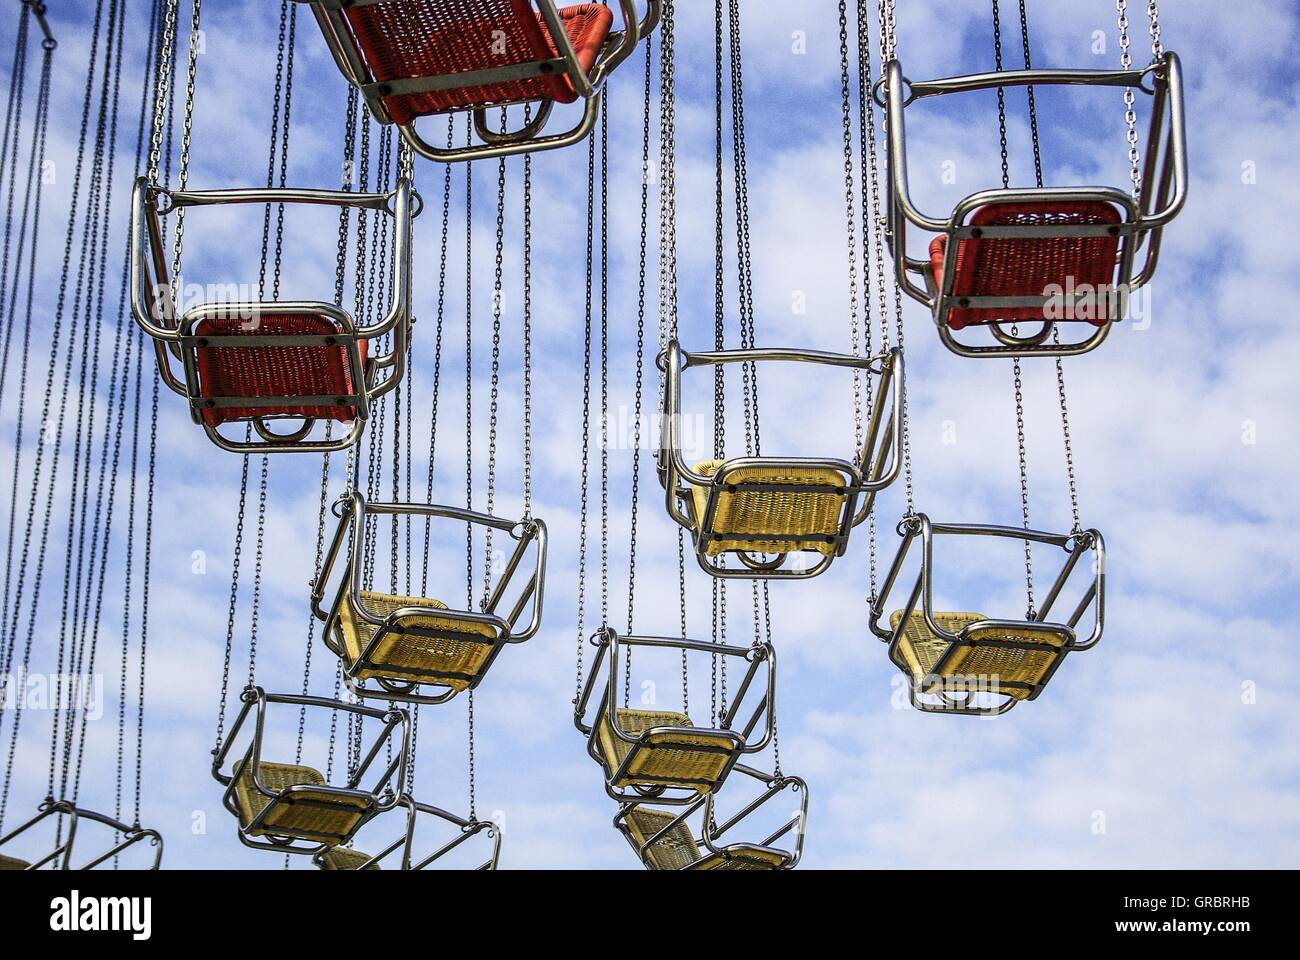 Fairs, Carnivals, Fairground, Chairoplanes - Stock Image